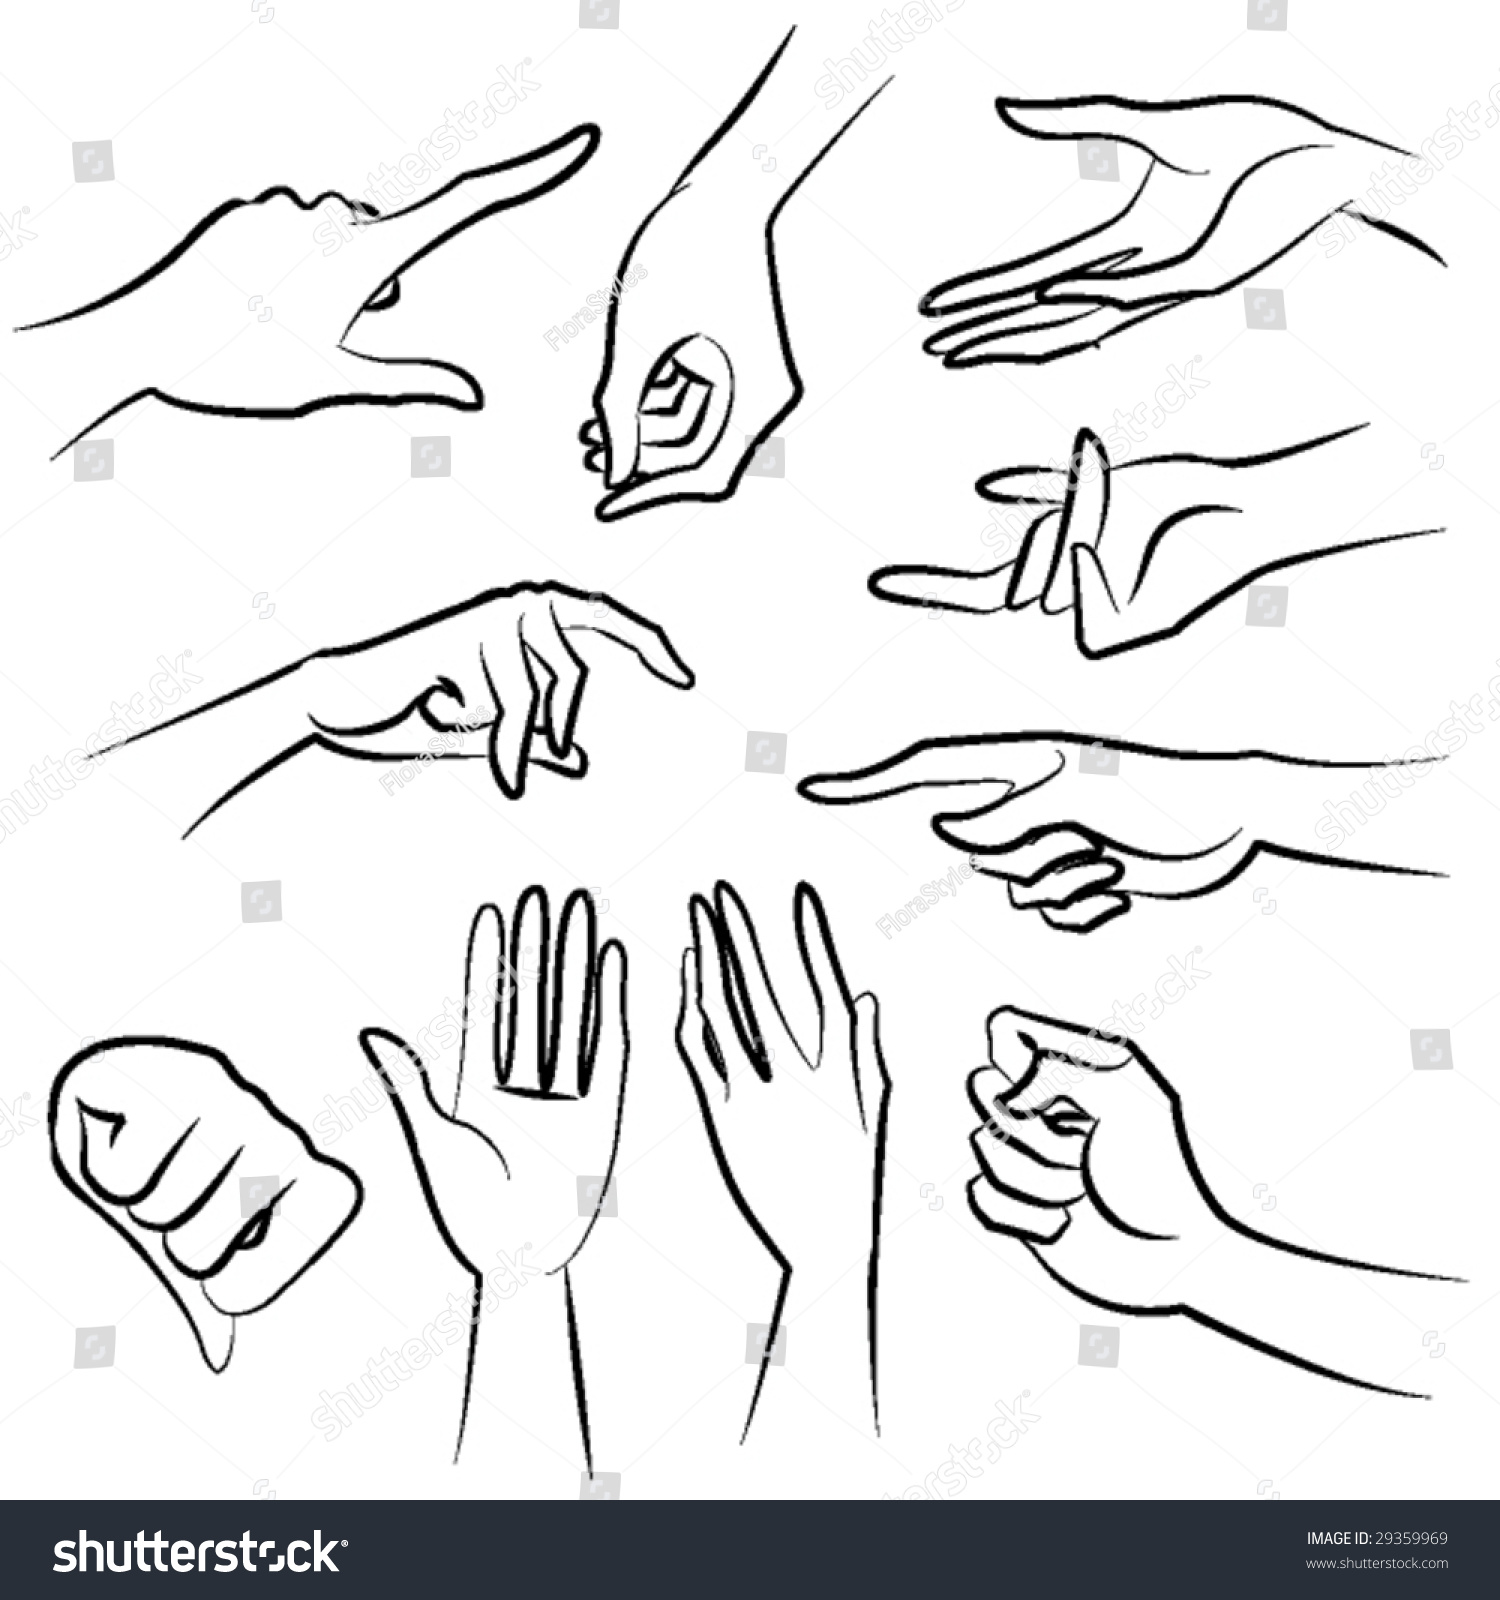 Lady Hands Vector Stock Vector 29359969 Shutterstock